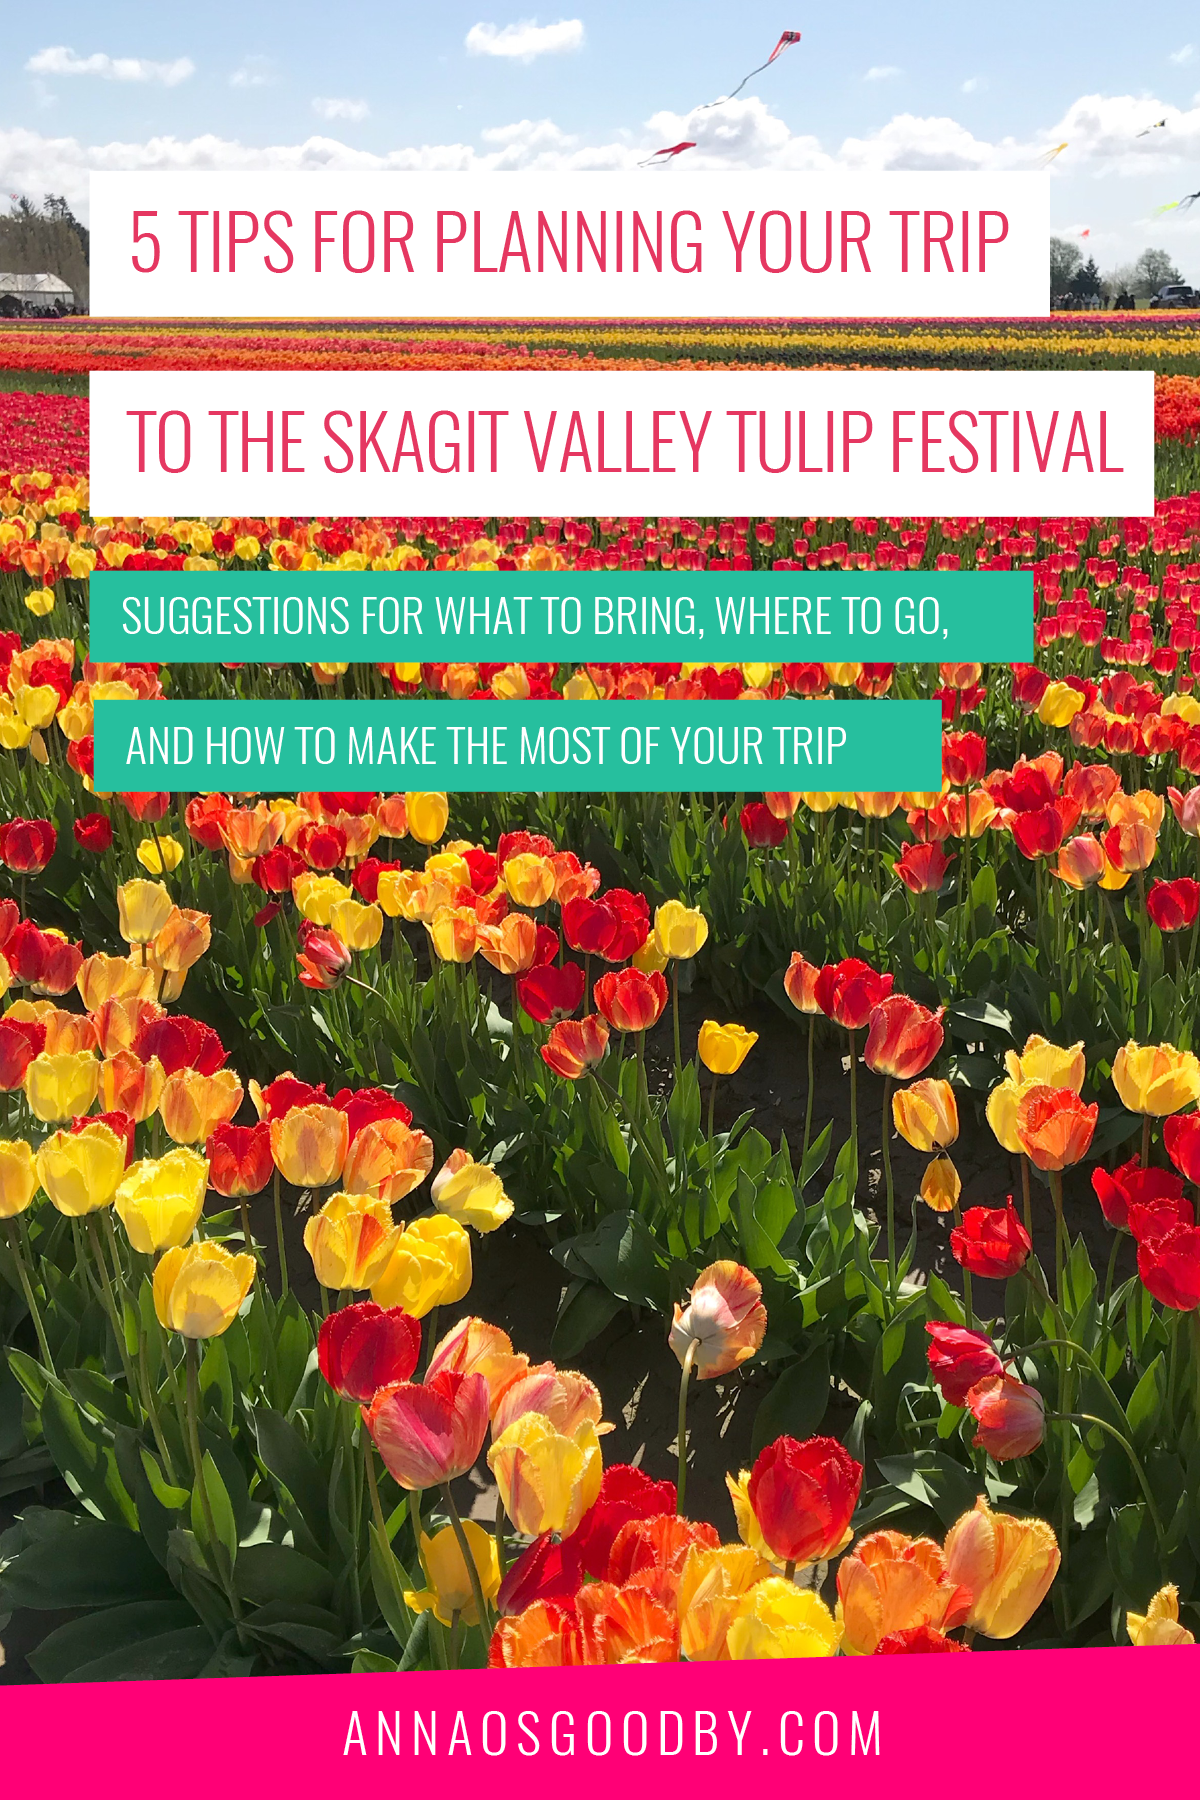 Anna Osgoodby Life + Biz :: 5 Tips for Planning your trip to the Skagit Valley Tulip Festival.png